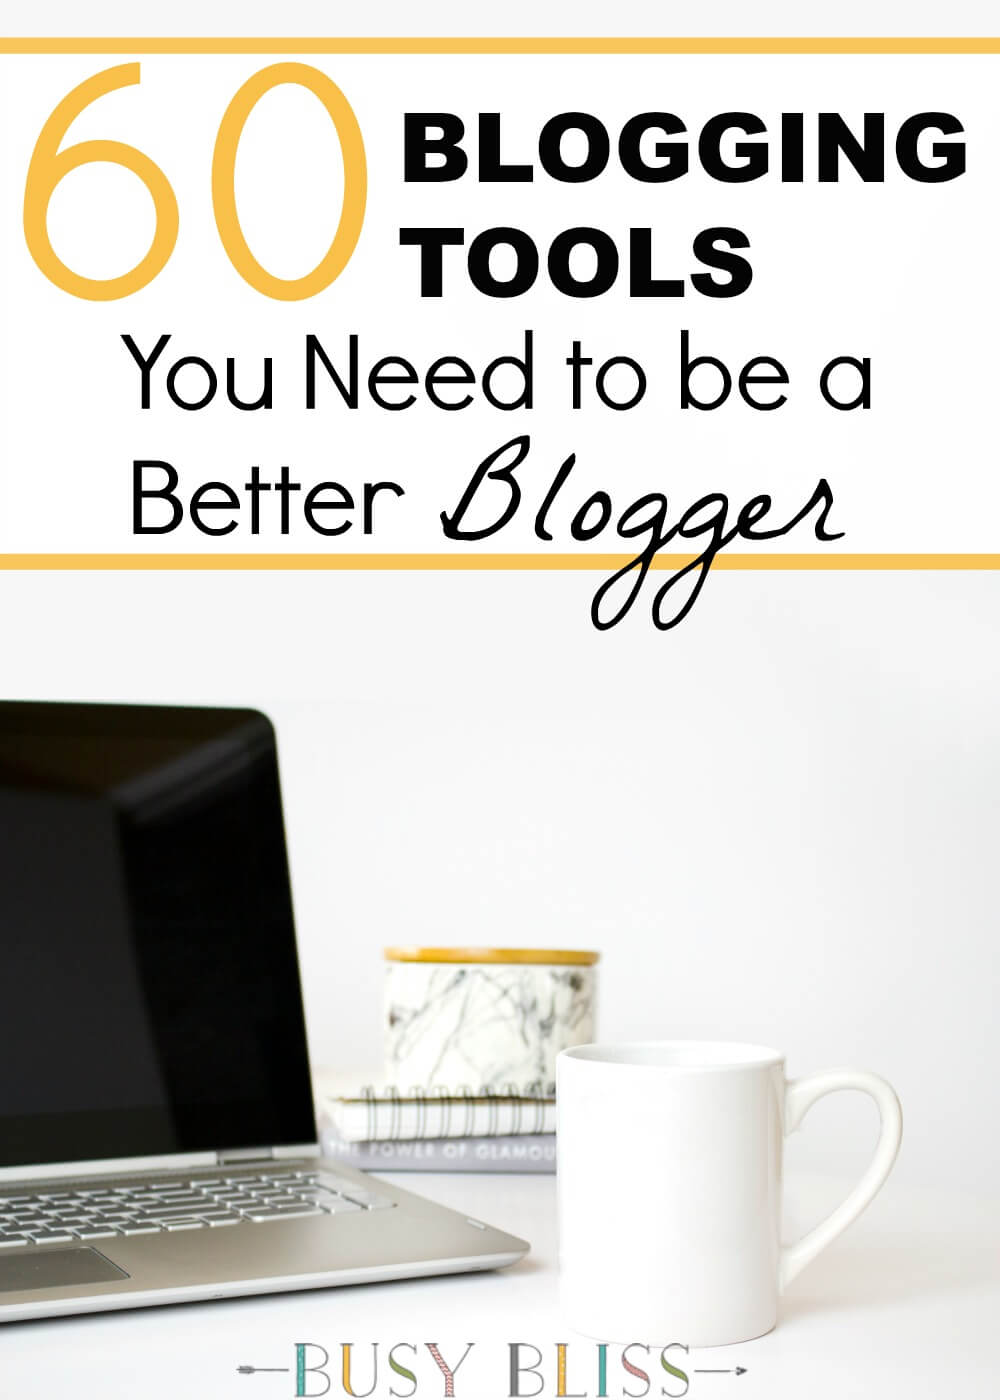 Check out this massive list of blogging tools to help you become a better blogger. These 60 tools are useful whether you are a blogging newbie or pro.